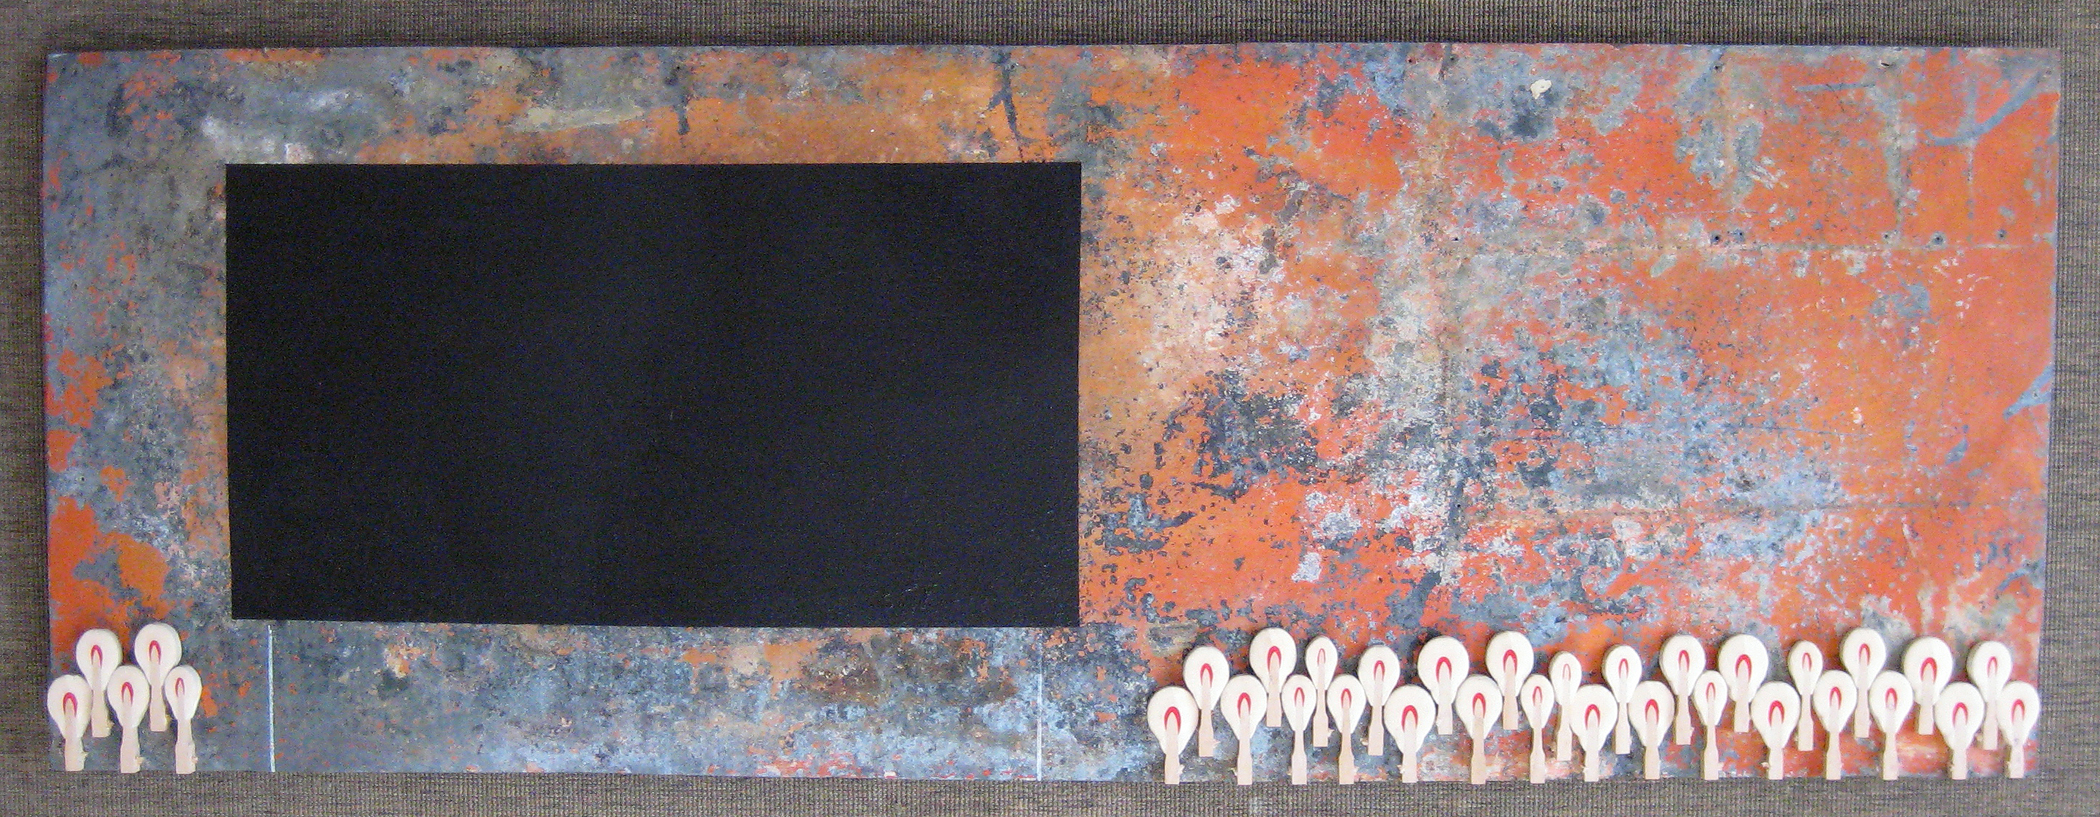 "Untitled (black billboard)    19"" x 53.25""  Acrylic, varnish, white charcoal, piano keys, on found metal   Price upon request"